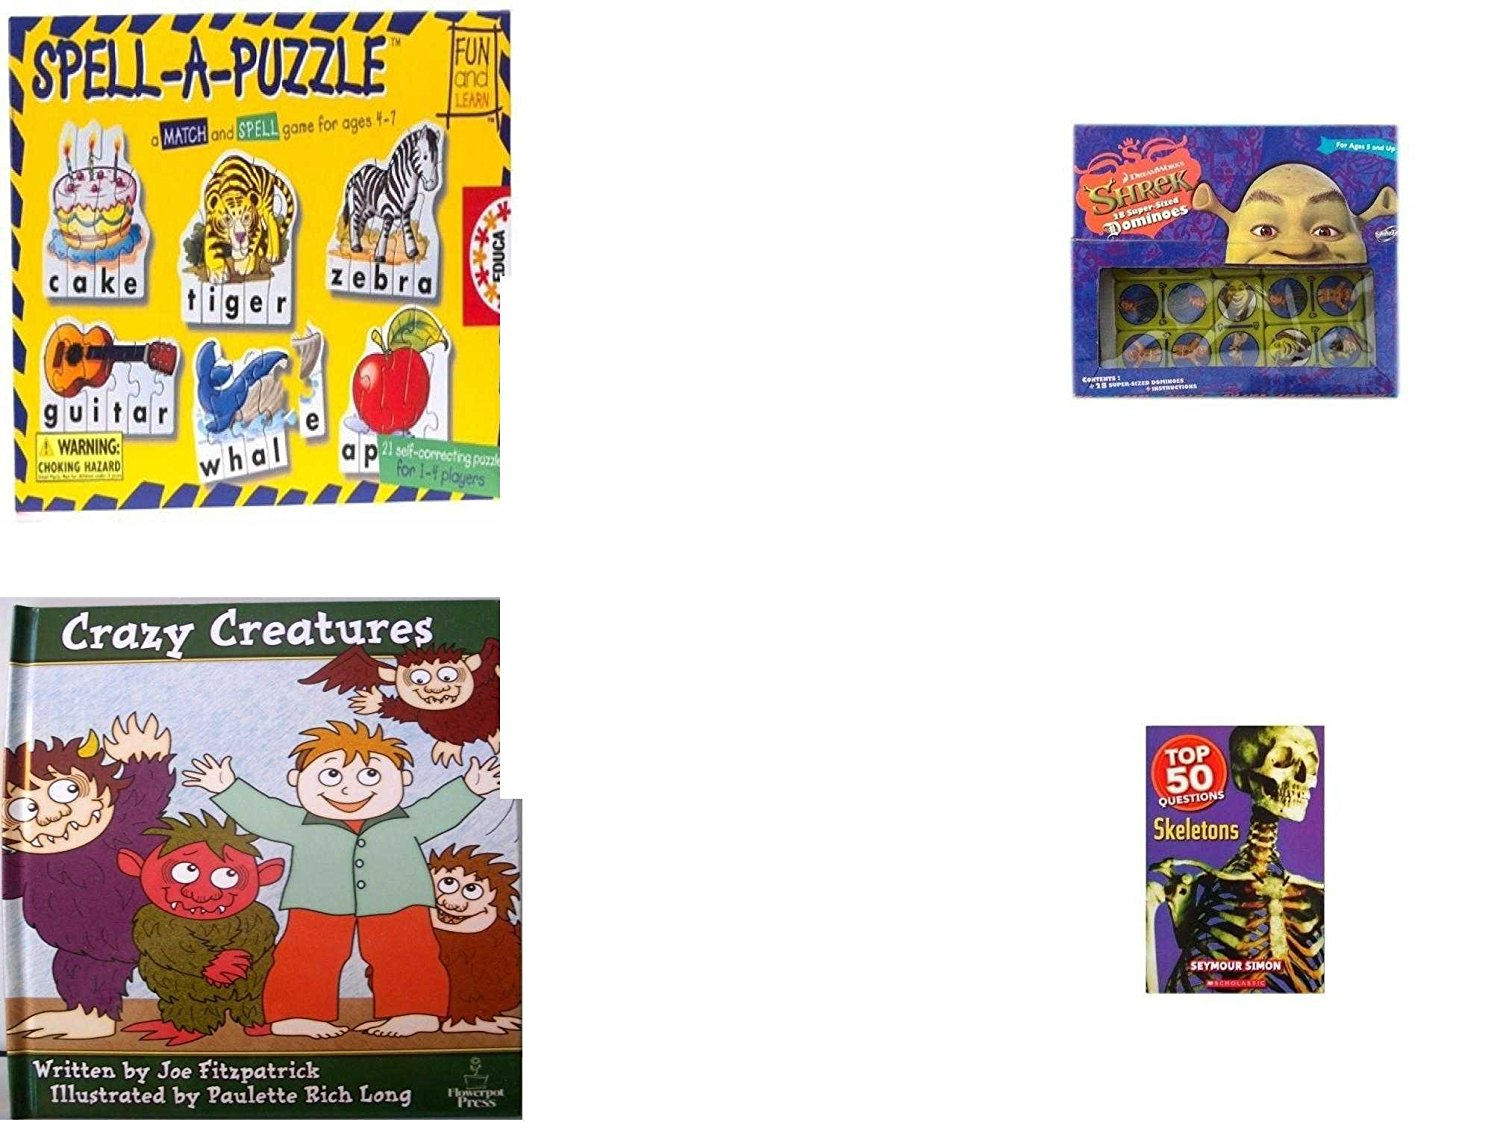 Children's Gift Bundle - Ages 3-5 [5 Piece] - Spell A Puzzle Game - Shrek Dominoes Toy - Ty Beanie Baby - Beani the Gray Cat - Crazy Creatures Hardcover Book - Top 50 Questions: Skeletons Paperback